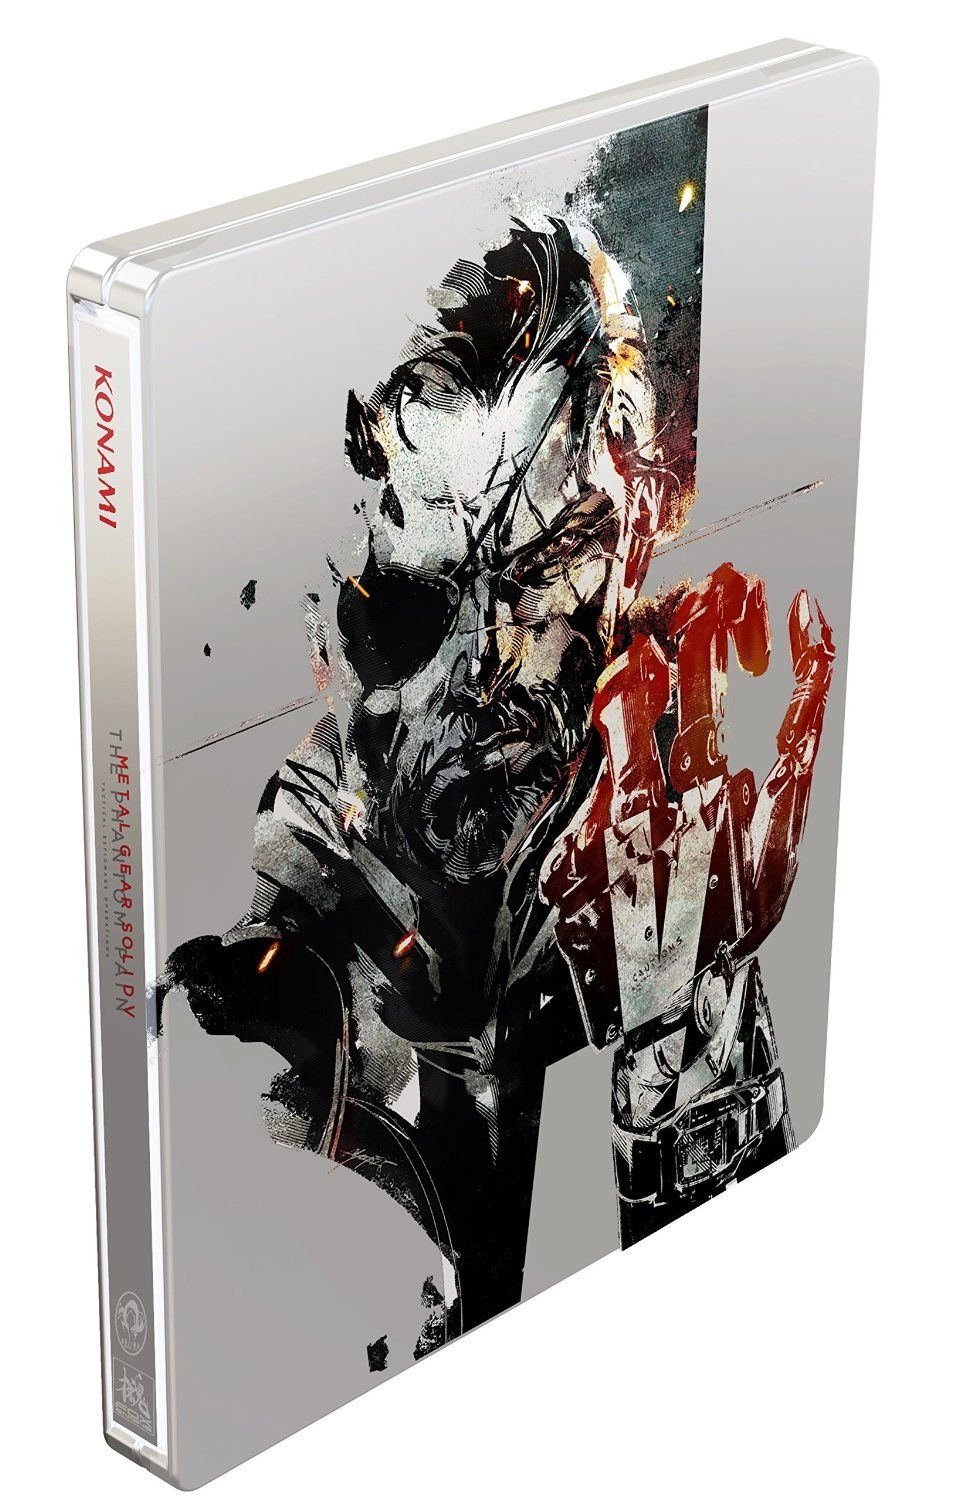 Metal Gear Solid V The Phantom Pain Steelbook - Játék nélkül